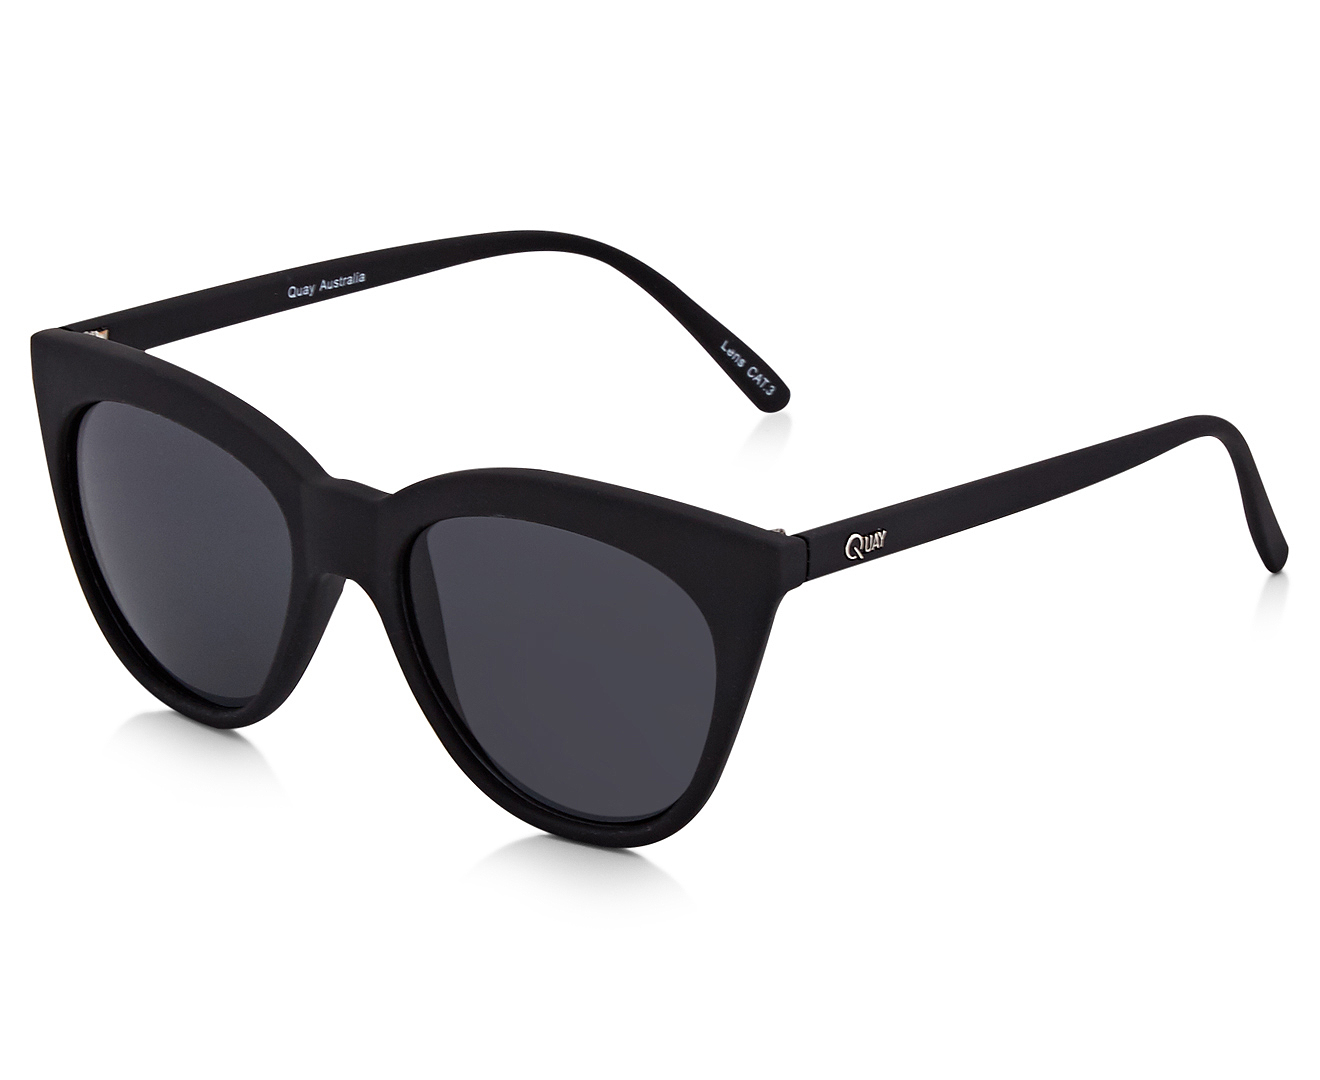 quay women Shop quay australia women's accessories - sunglasses at up to 70% off get the lowest price on your favorite brands at poshmark poshmark makes shopping fun, affordable & easy.